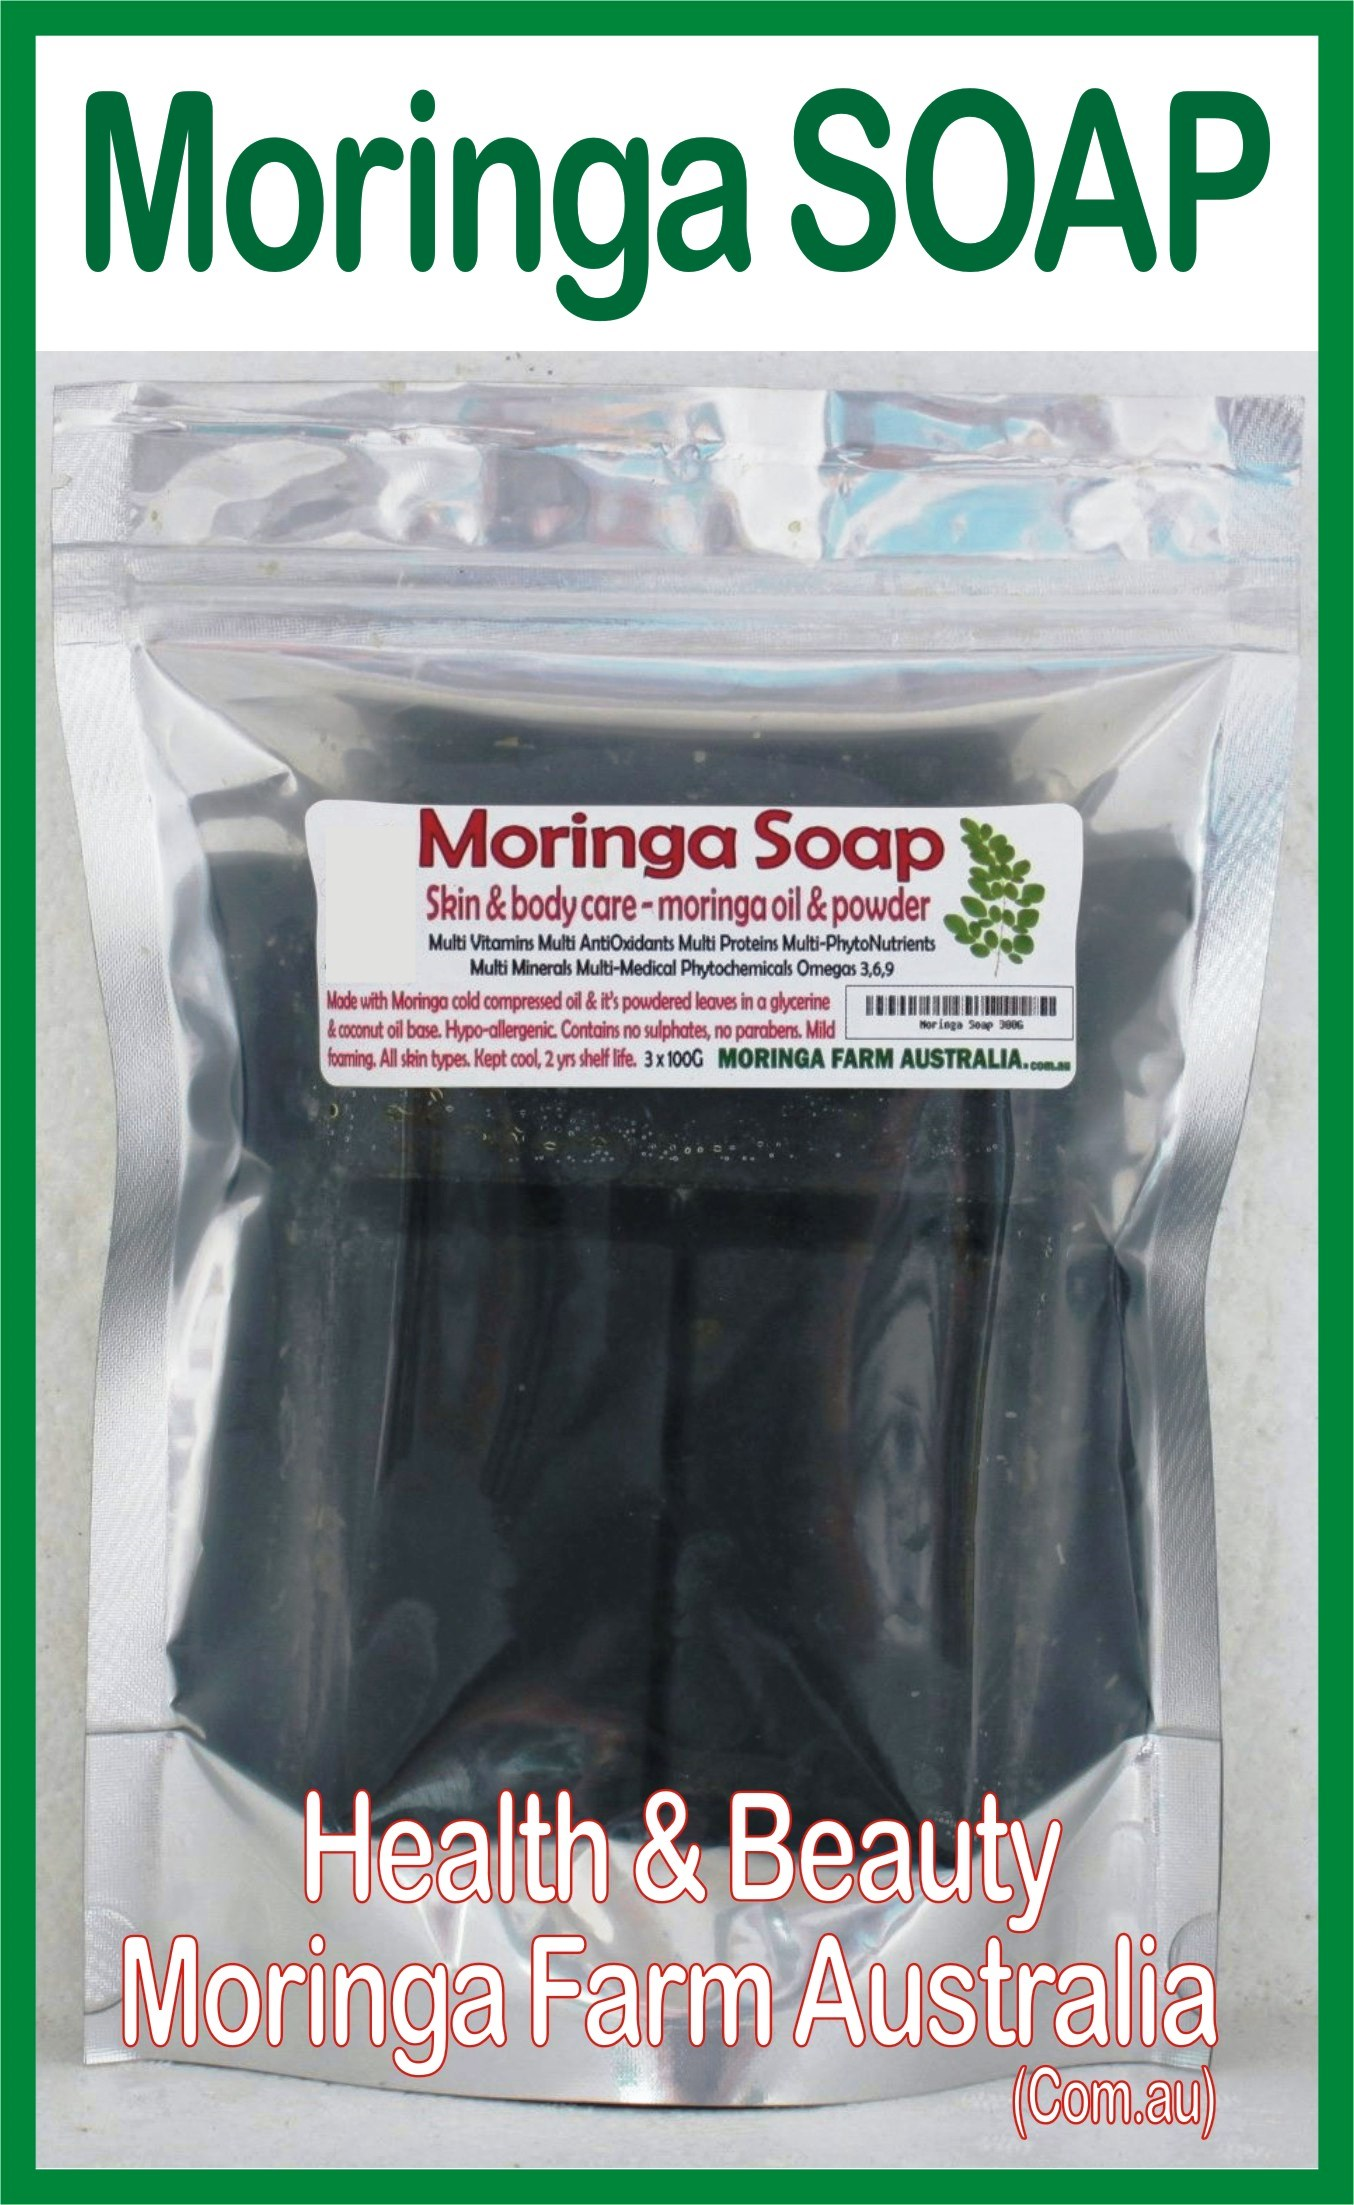 Moringa SOAP 3 X 100G - Moringa seed oil & ground leaf prep.